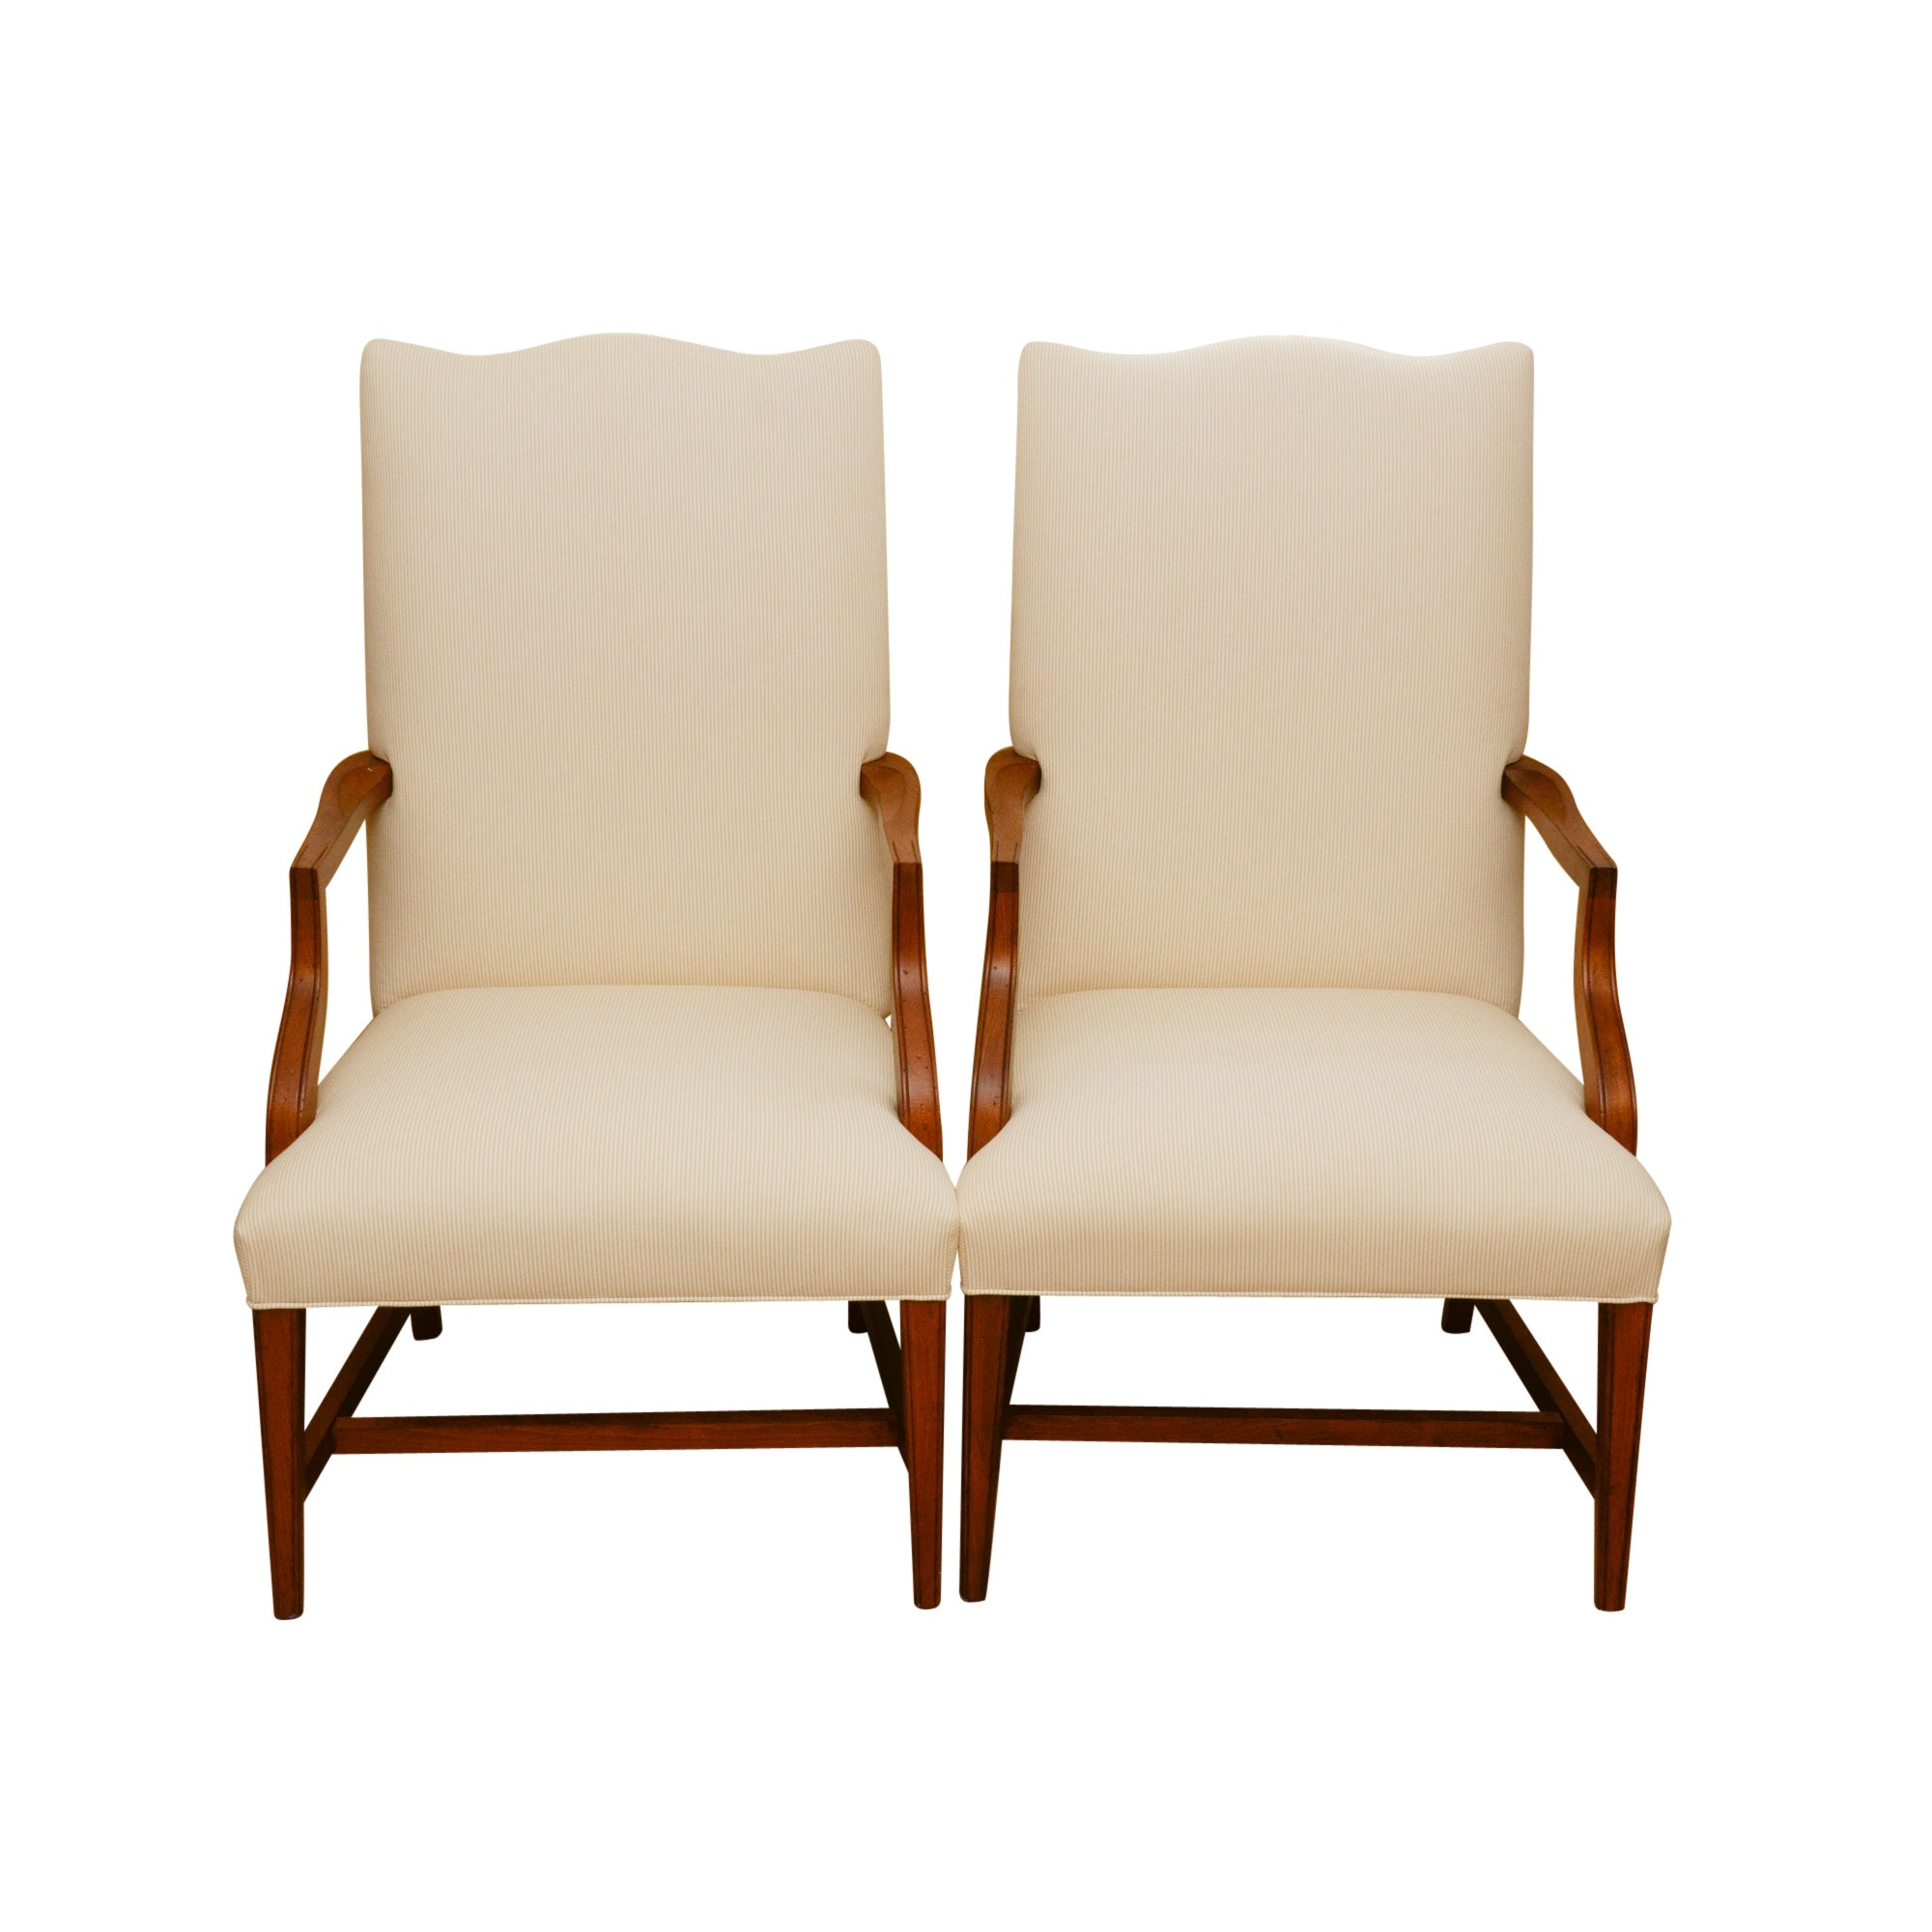 Upholstered Library Style Armchairs with Seat Covers by Ethan Allen